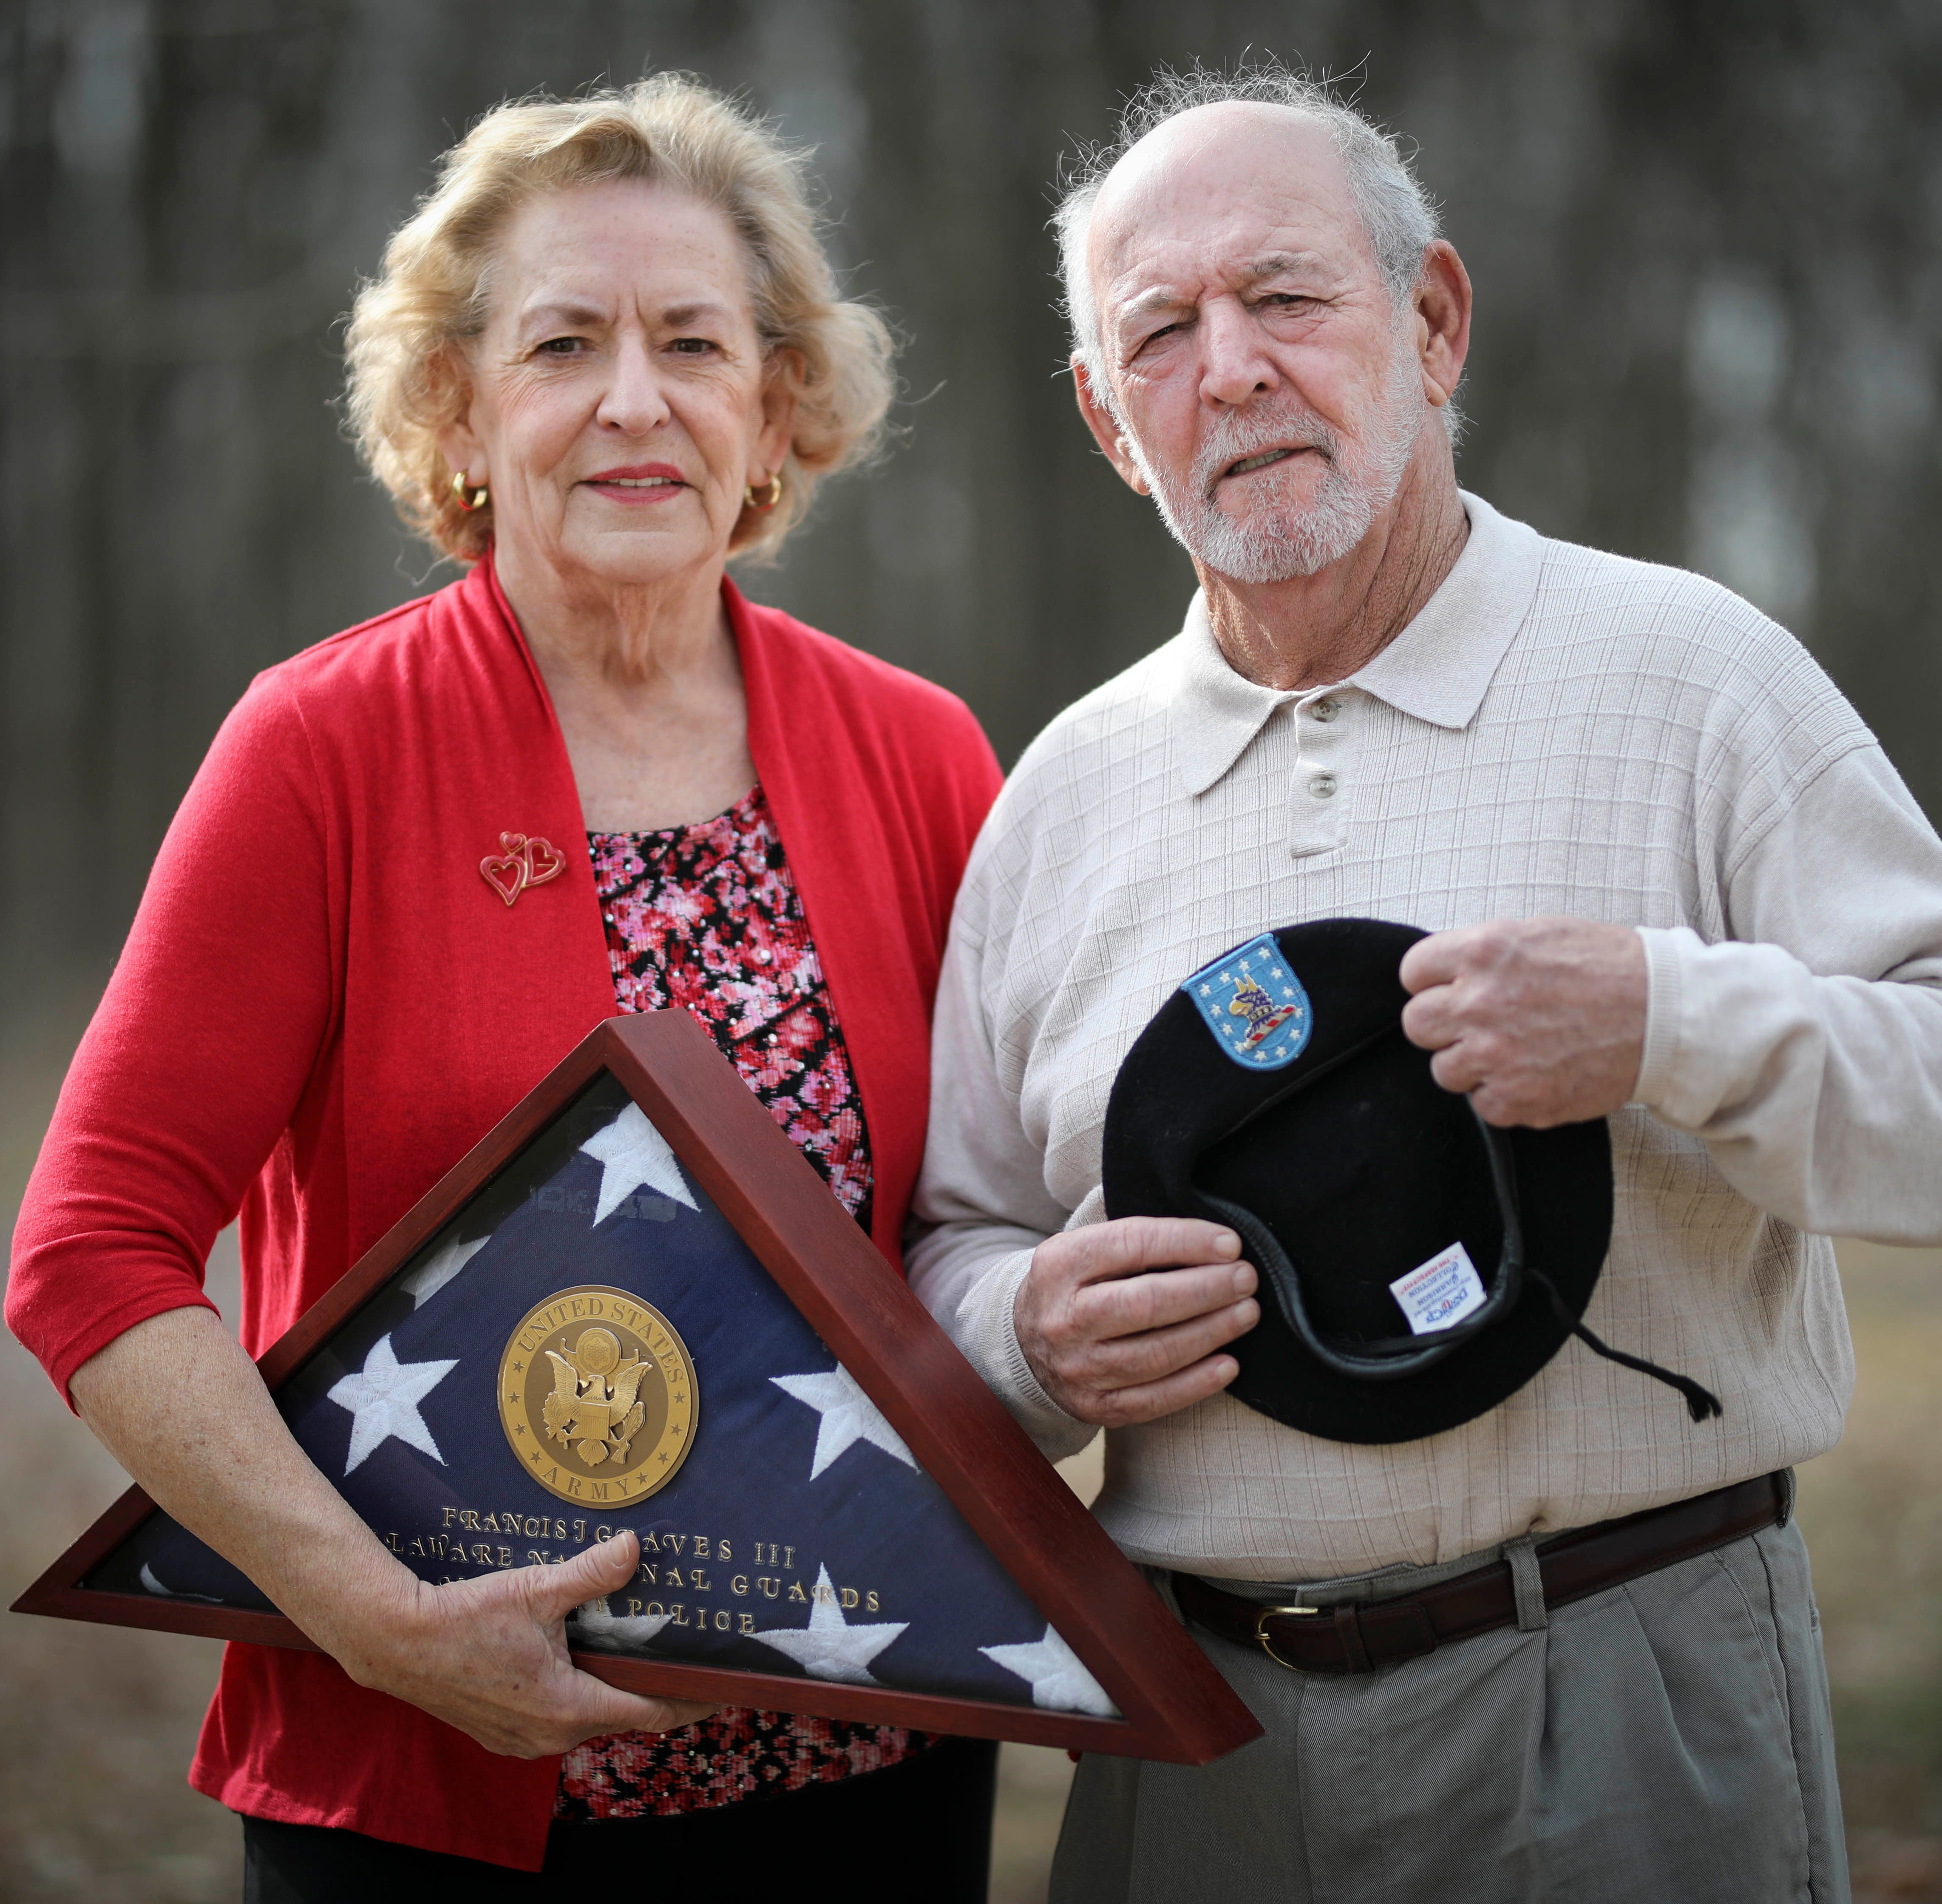 One died, one survived: Veteran suicide epidemic through the eyes of 2 Delaware families